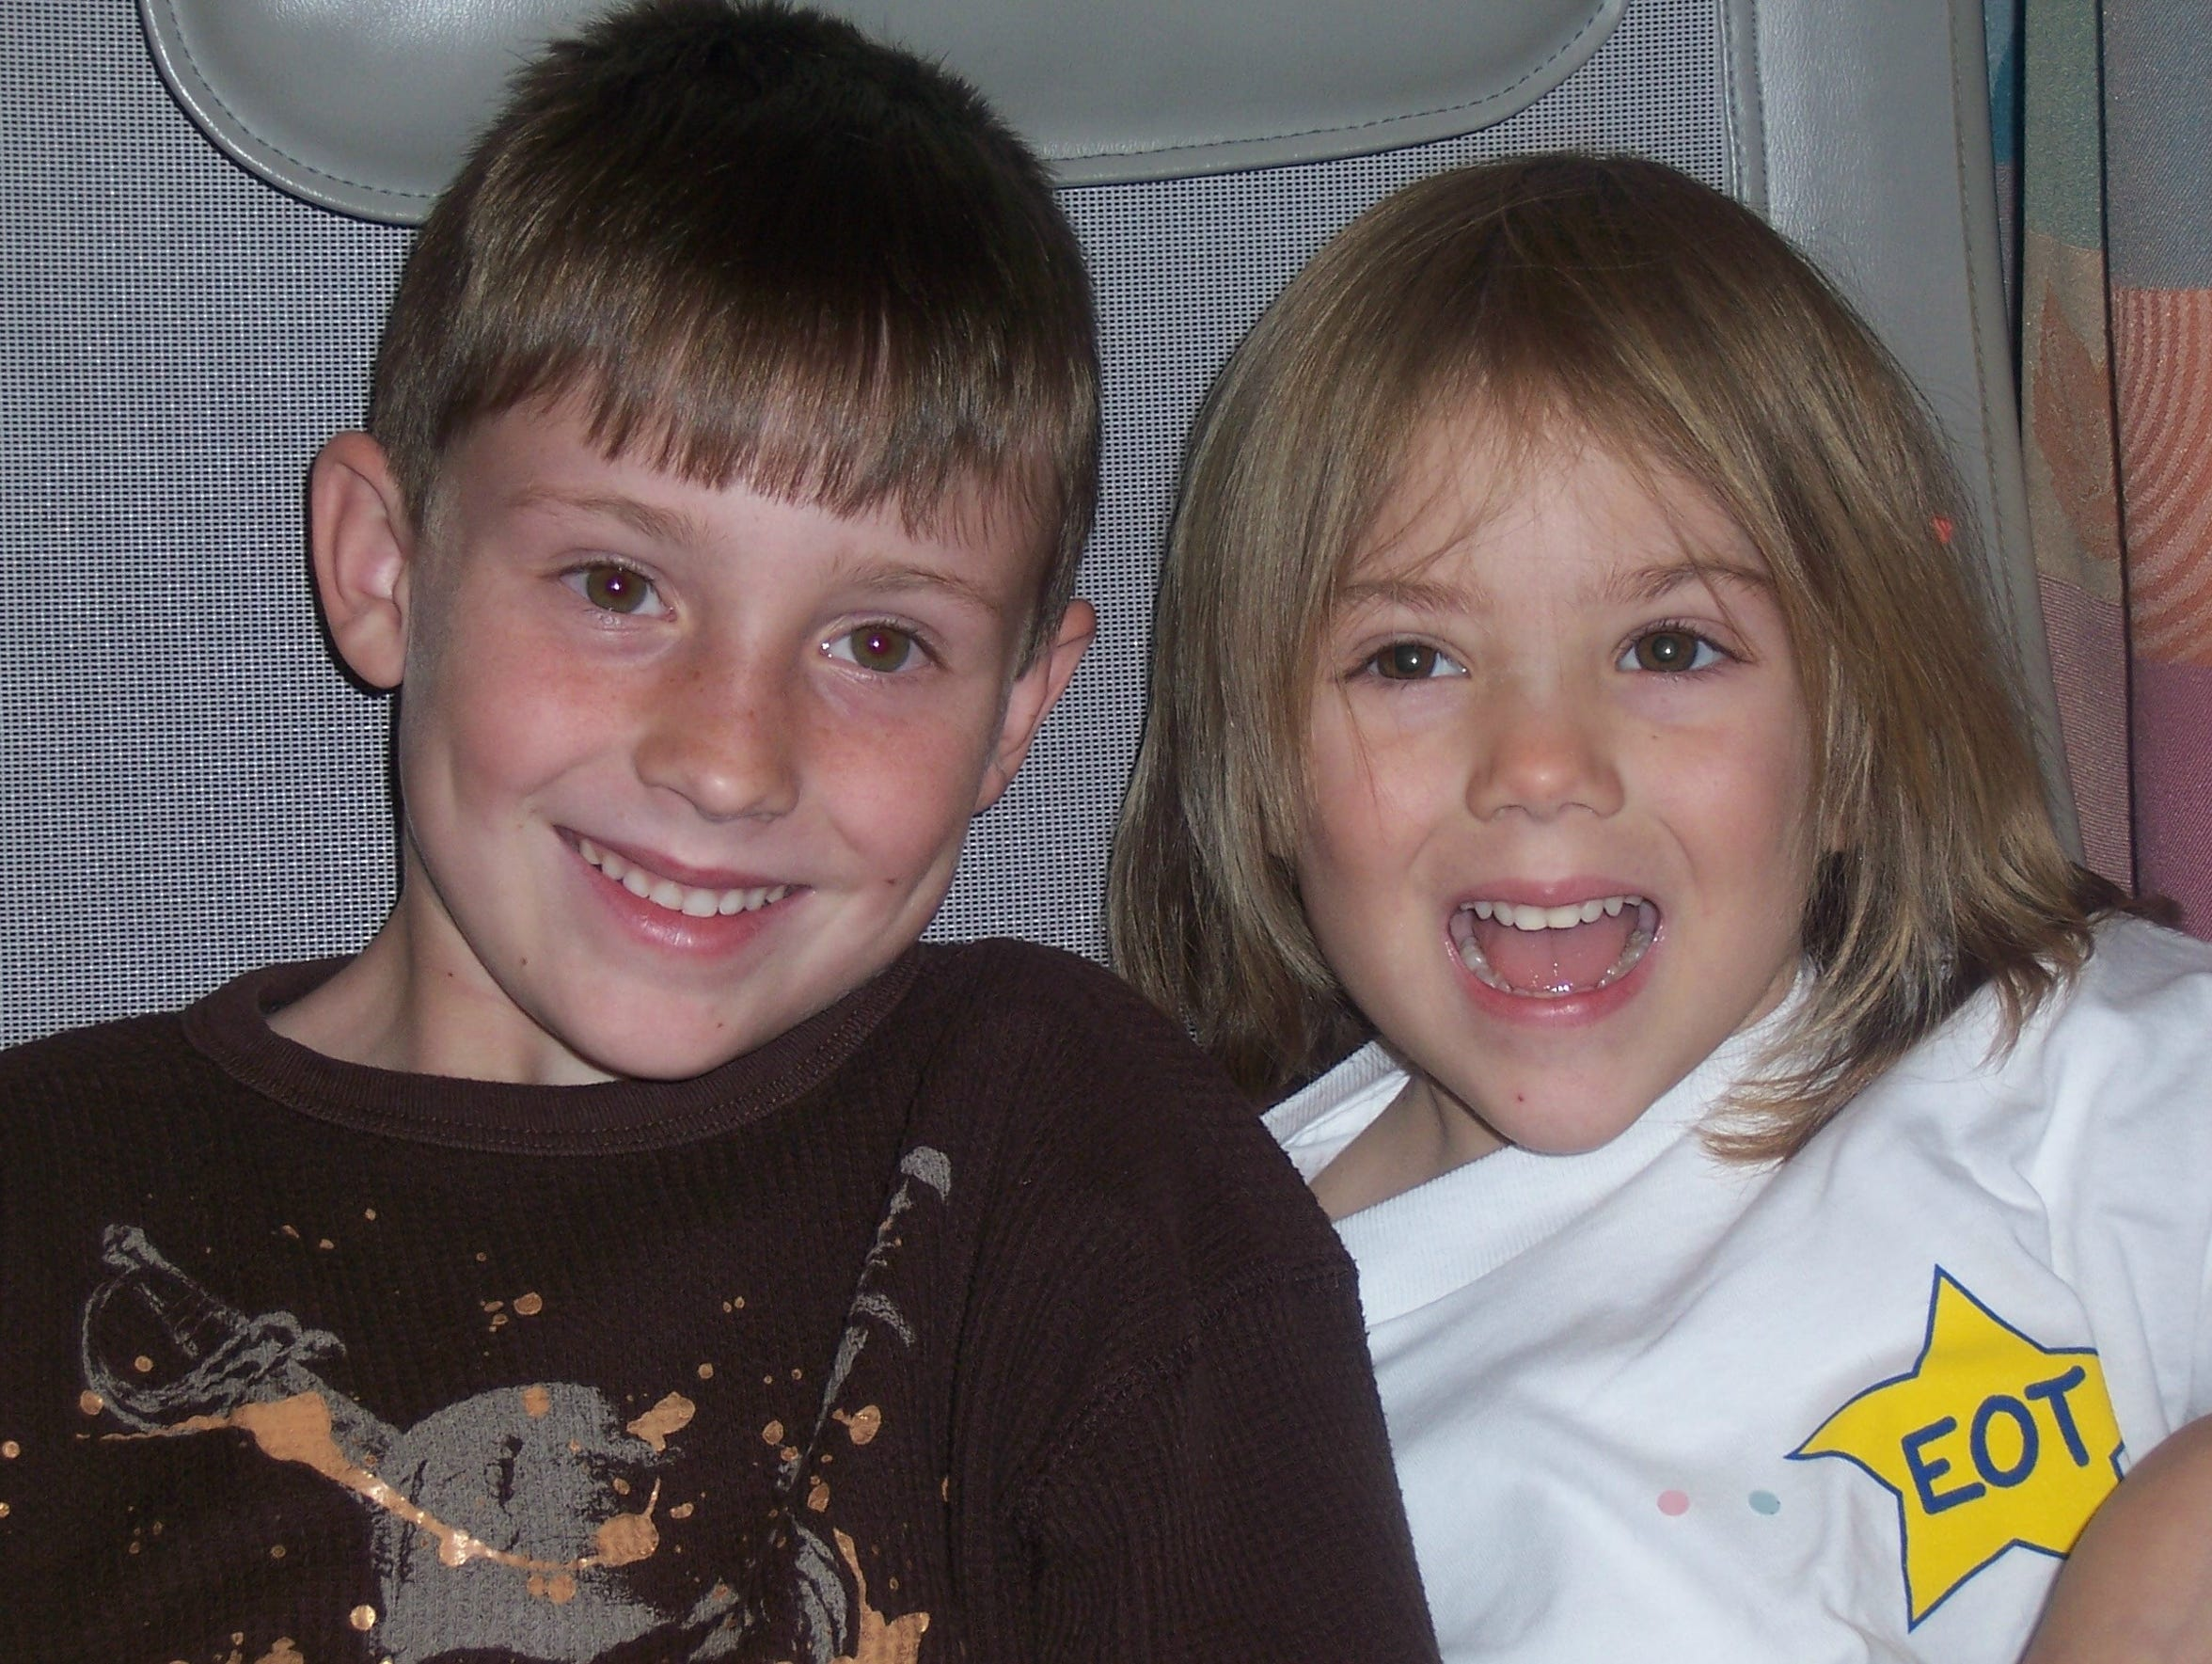 Kacie Francois and her brother, Jacob, at the end of